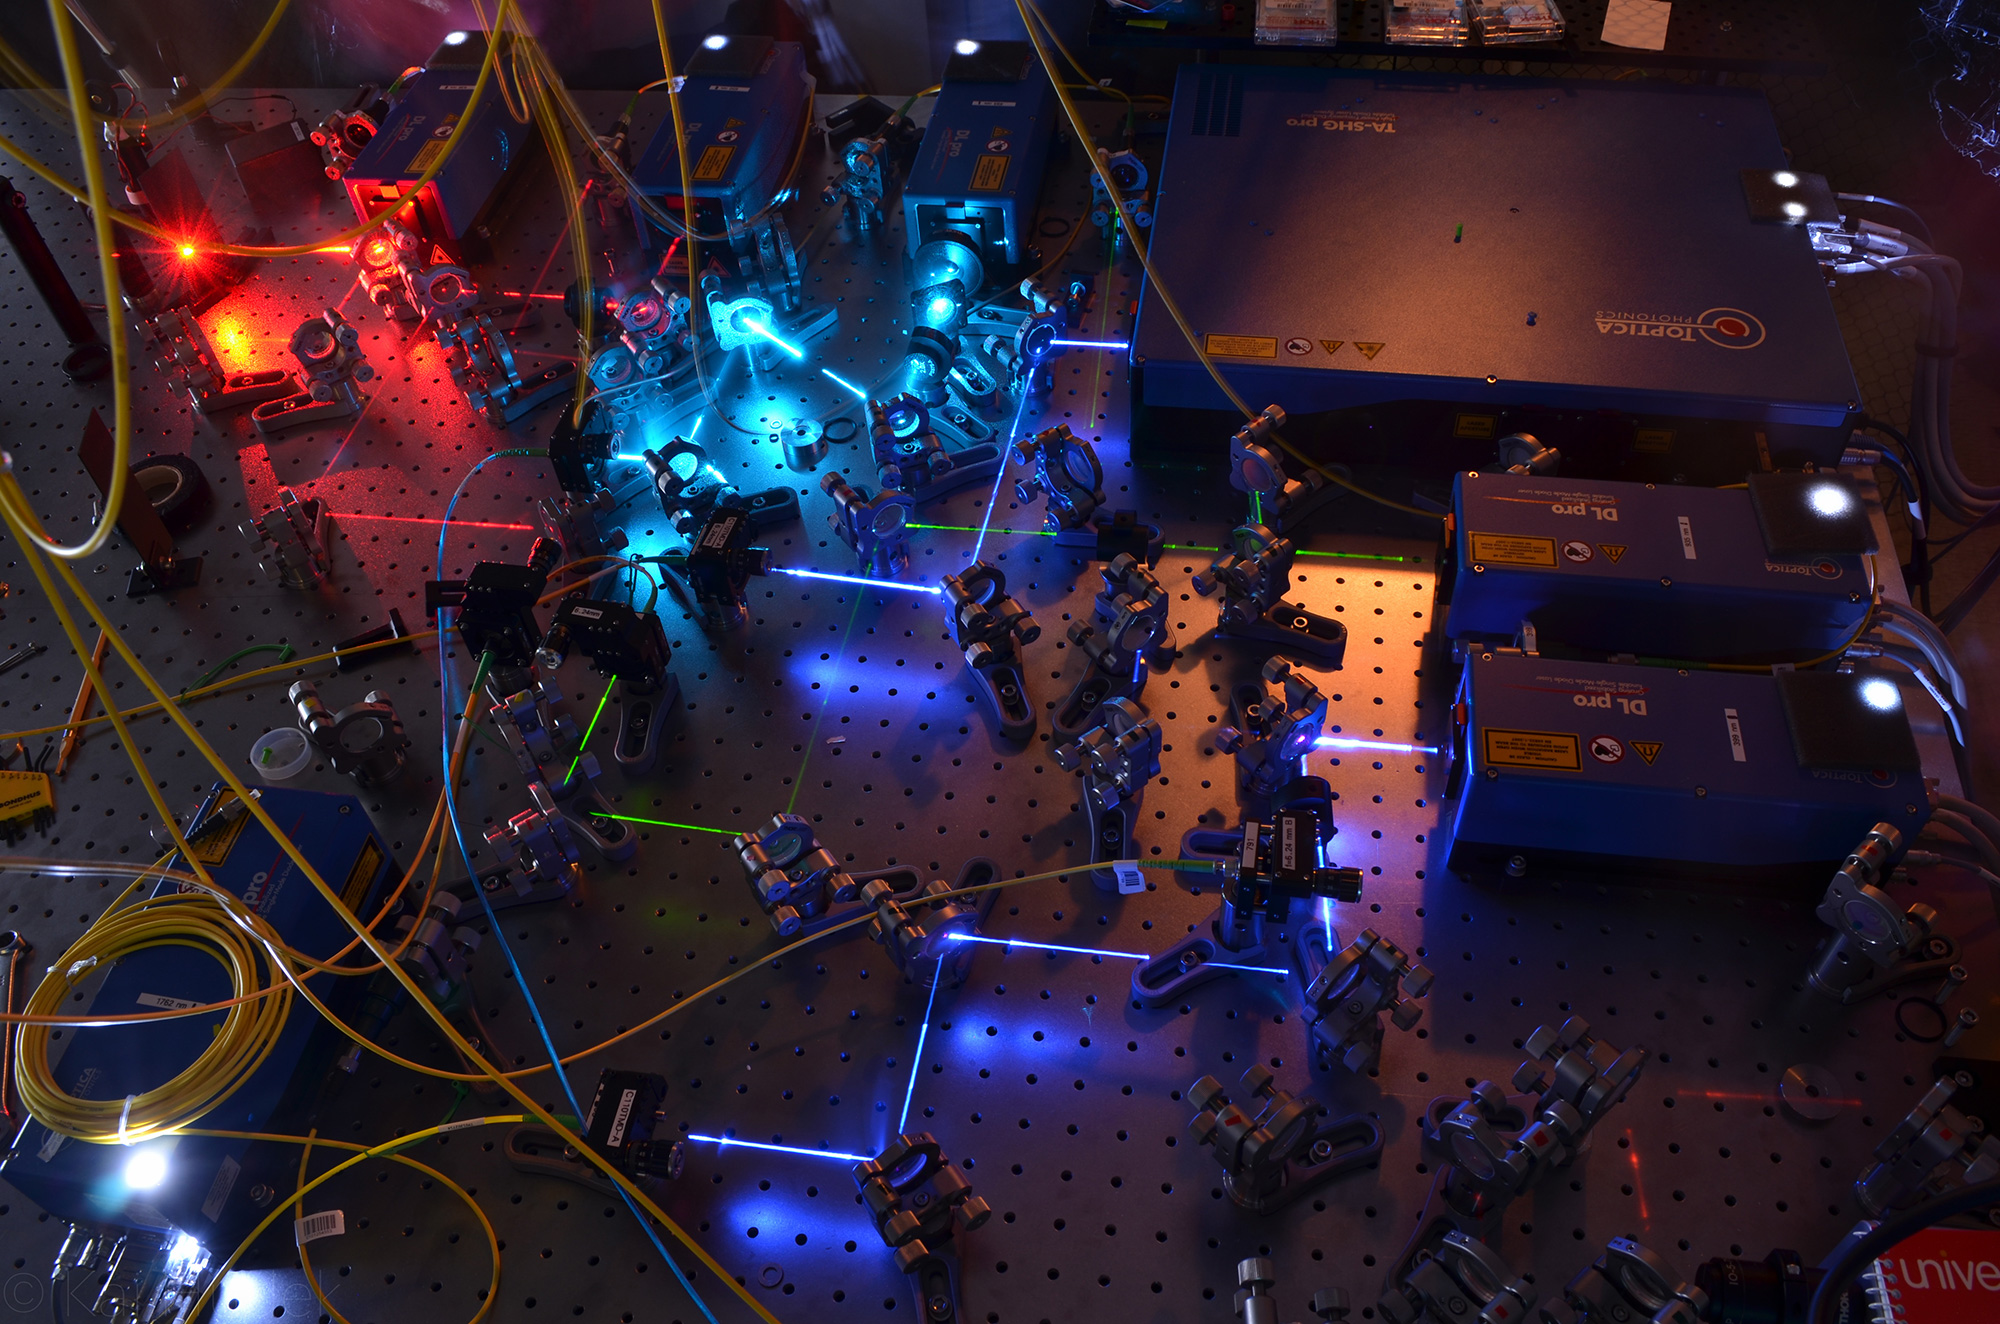 Lasers in a laboratory.